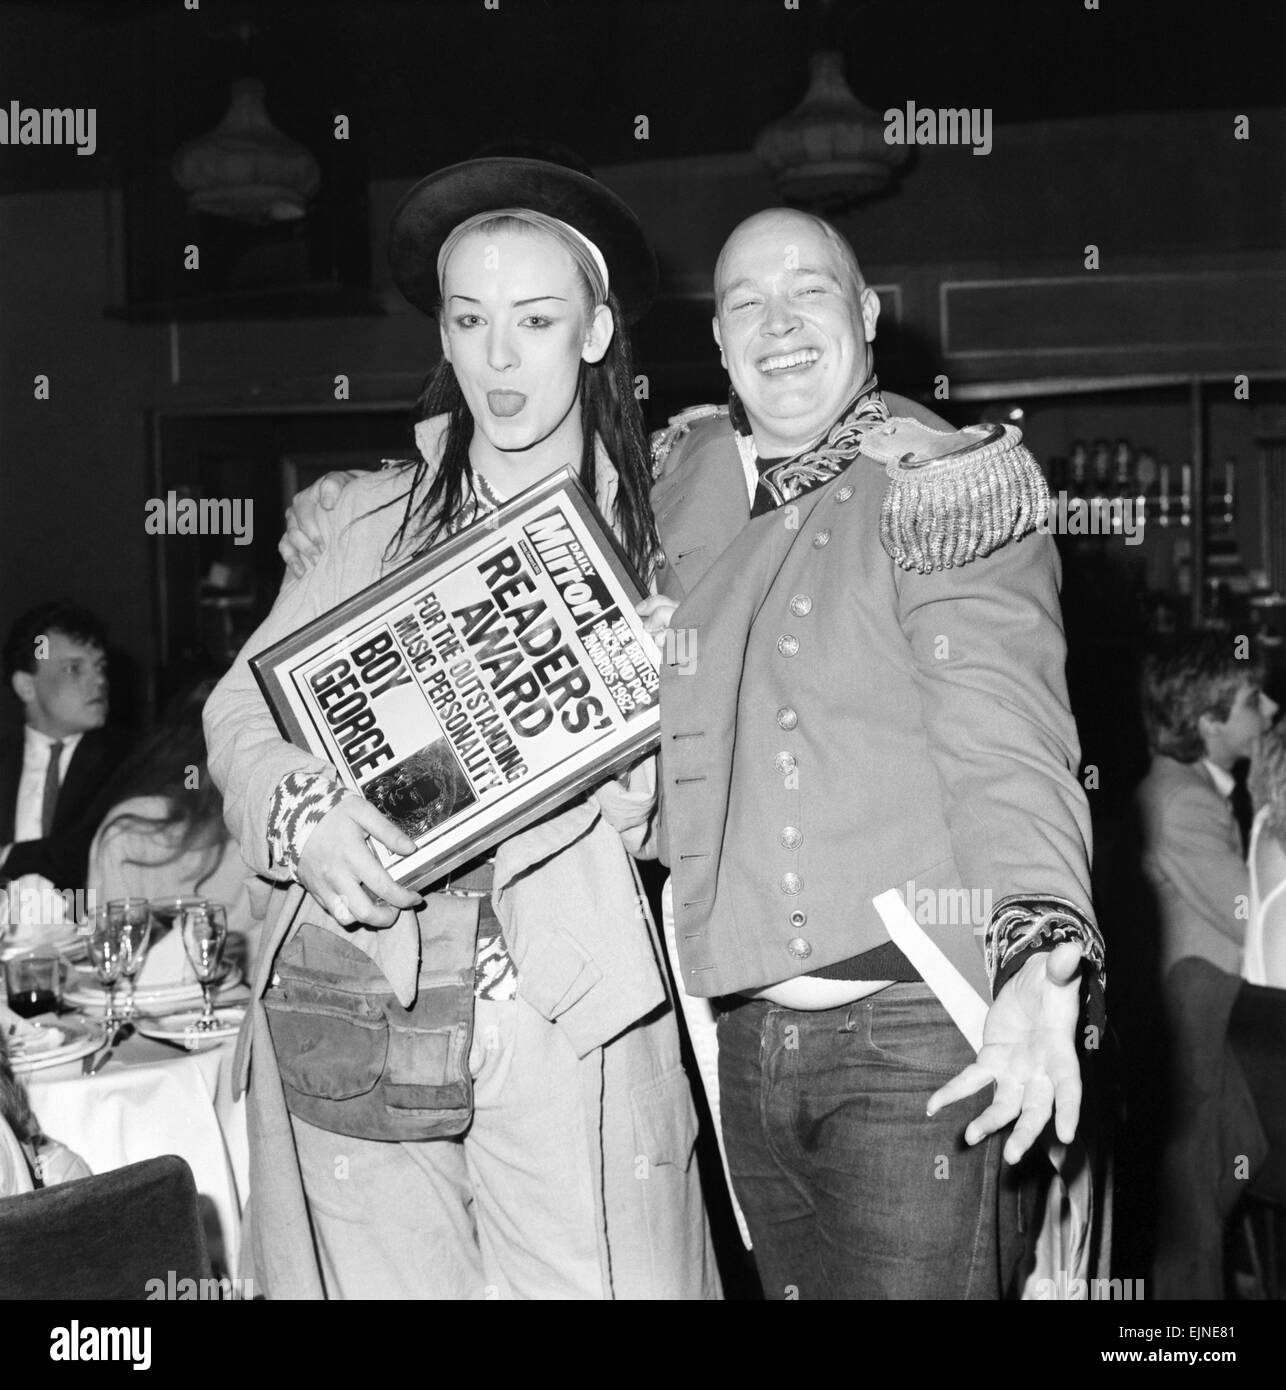 British Rock and Pop award at London's Lyceum ballroom. Singer of the group Culture Club Boy George celebrates after Stock Photo